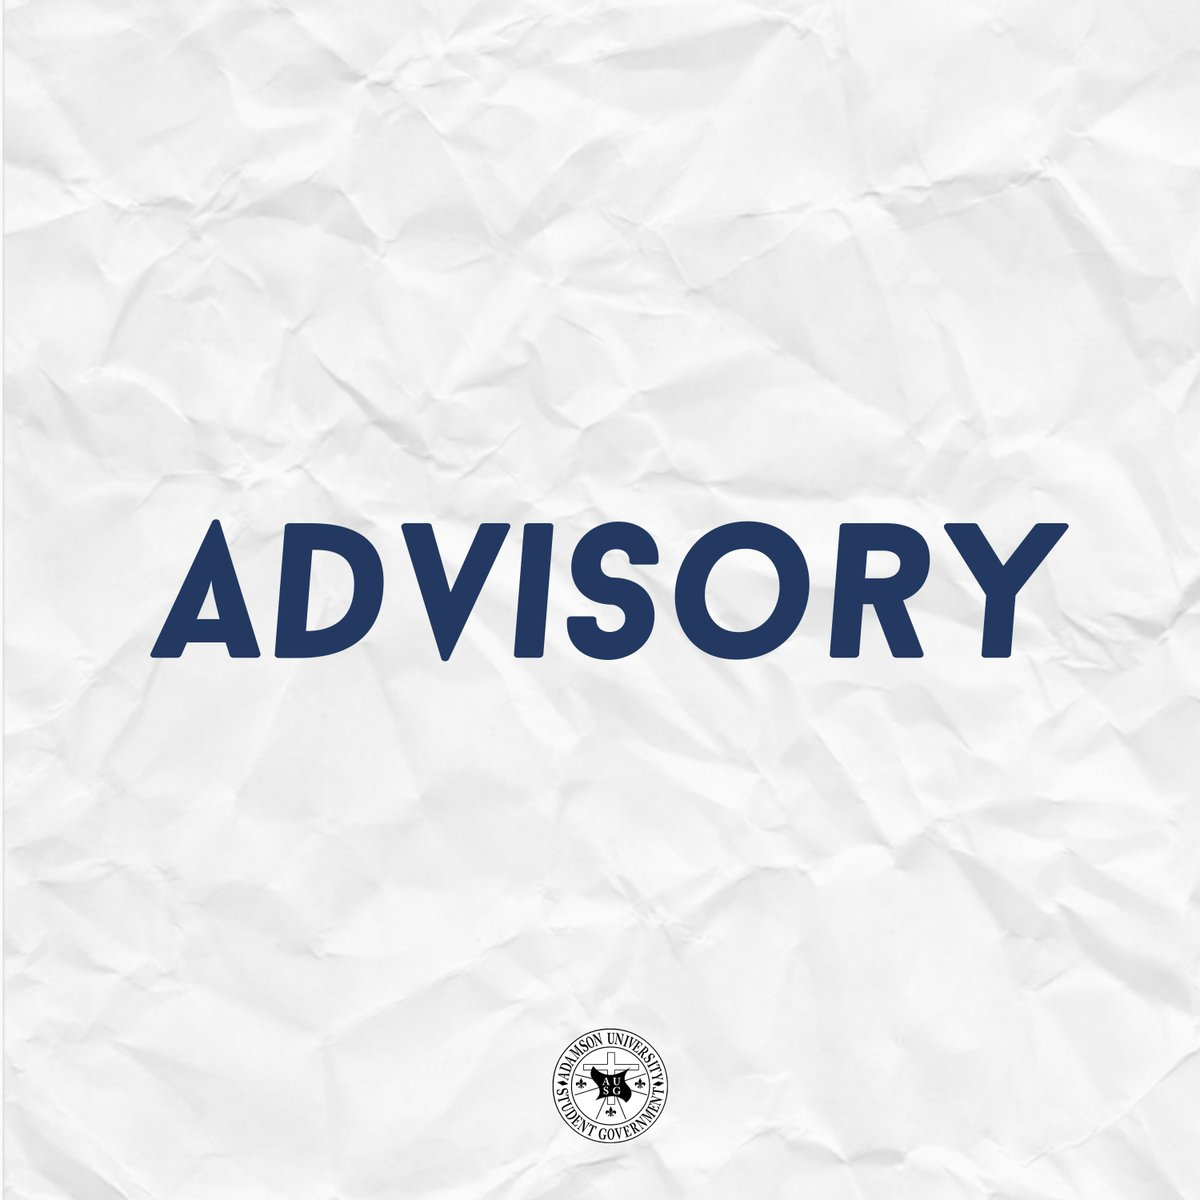 JUST IN: The VPAA and VPSA approved AUSG&#39;s request to allow college students to wear alternative shirts during the months of April and May. Starting this week, students may wear White AdU shirt every Monday and Blue AdU Shirt every Friday. <br>http://pic.twitter.com/jaUAqRFPbX